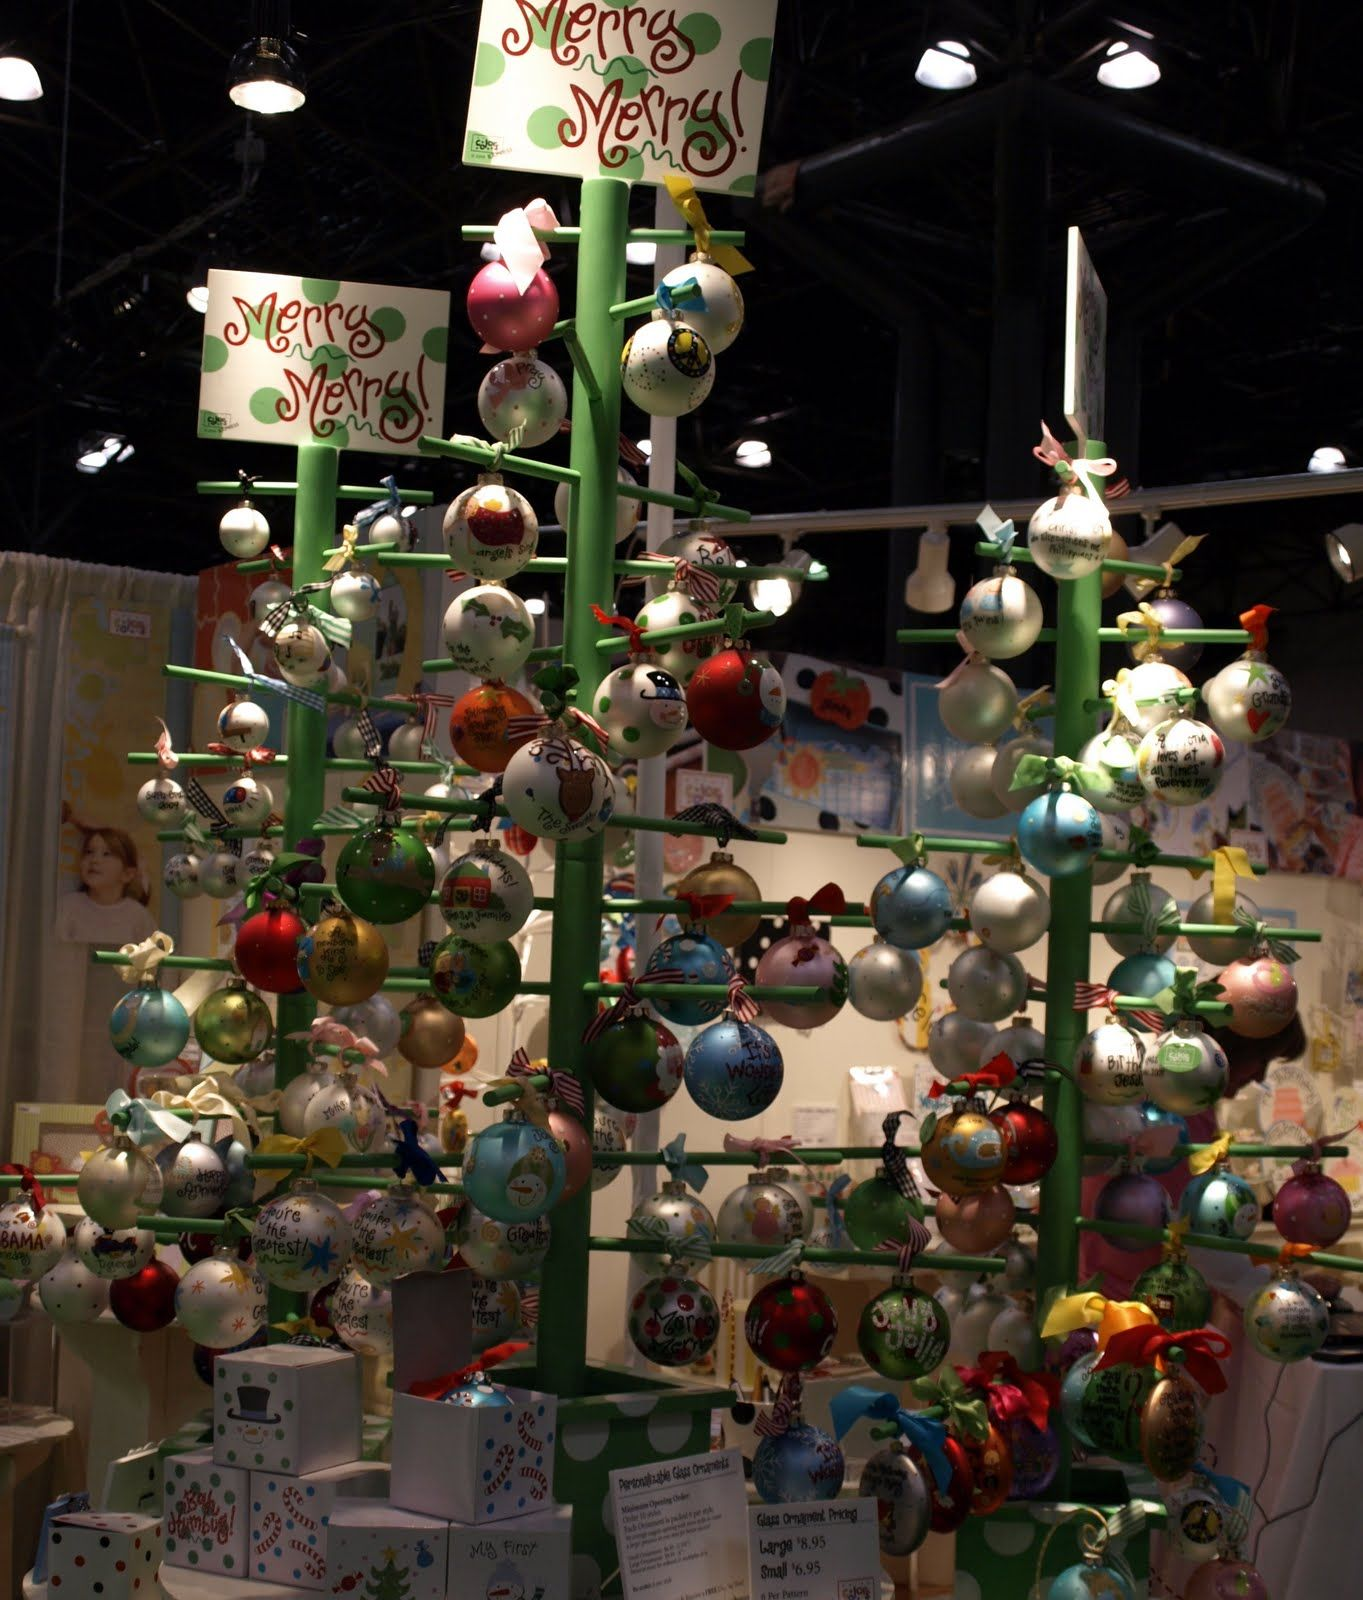 A Party Style Xmas In July Ornament Display Ornament Tree Display Ornament Display Craft Fairs Booth